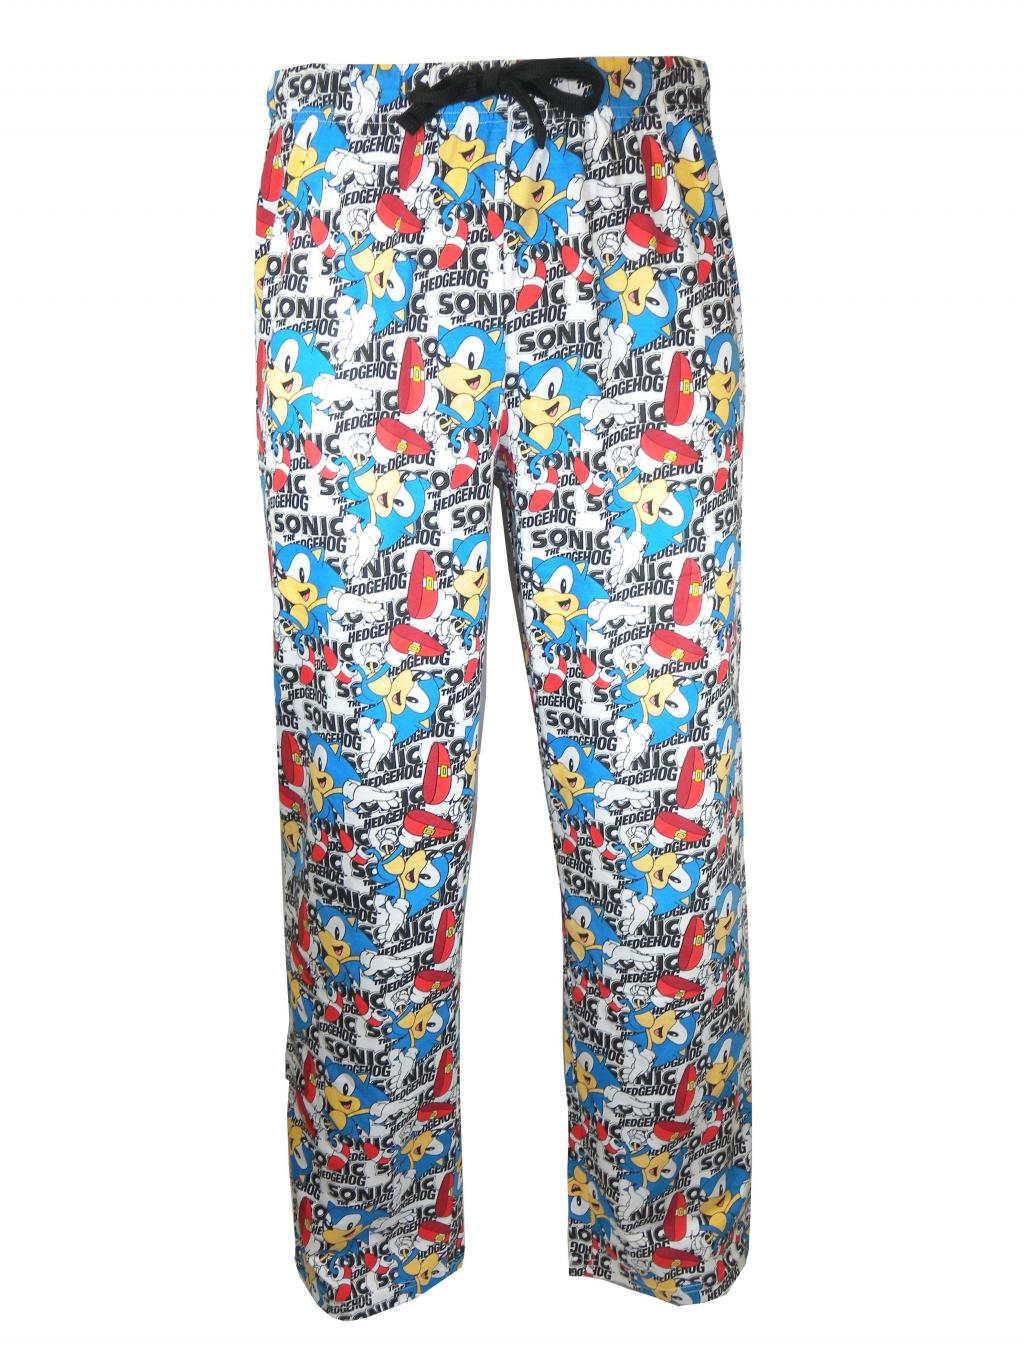 SONIC - Pantalon Pyjama - Black and White (XXL)_1